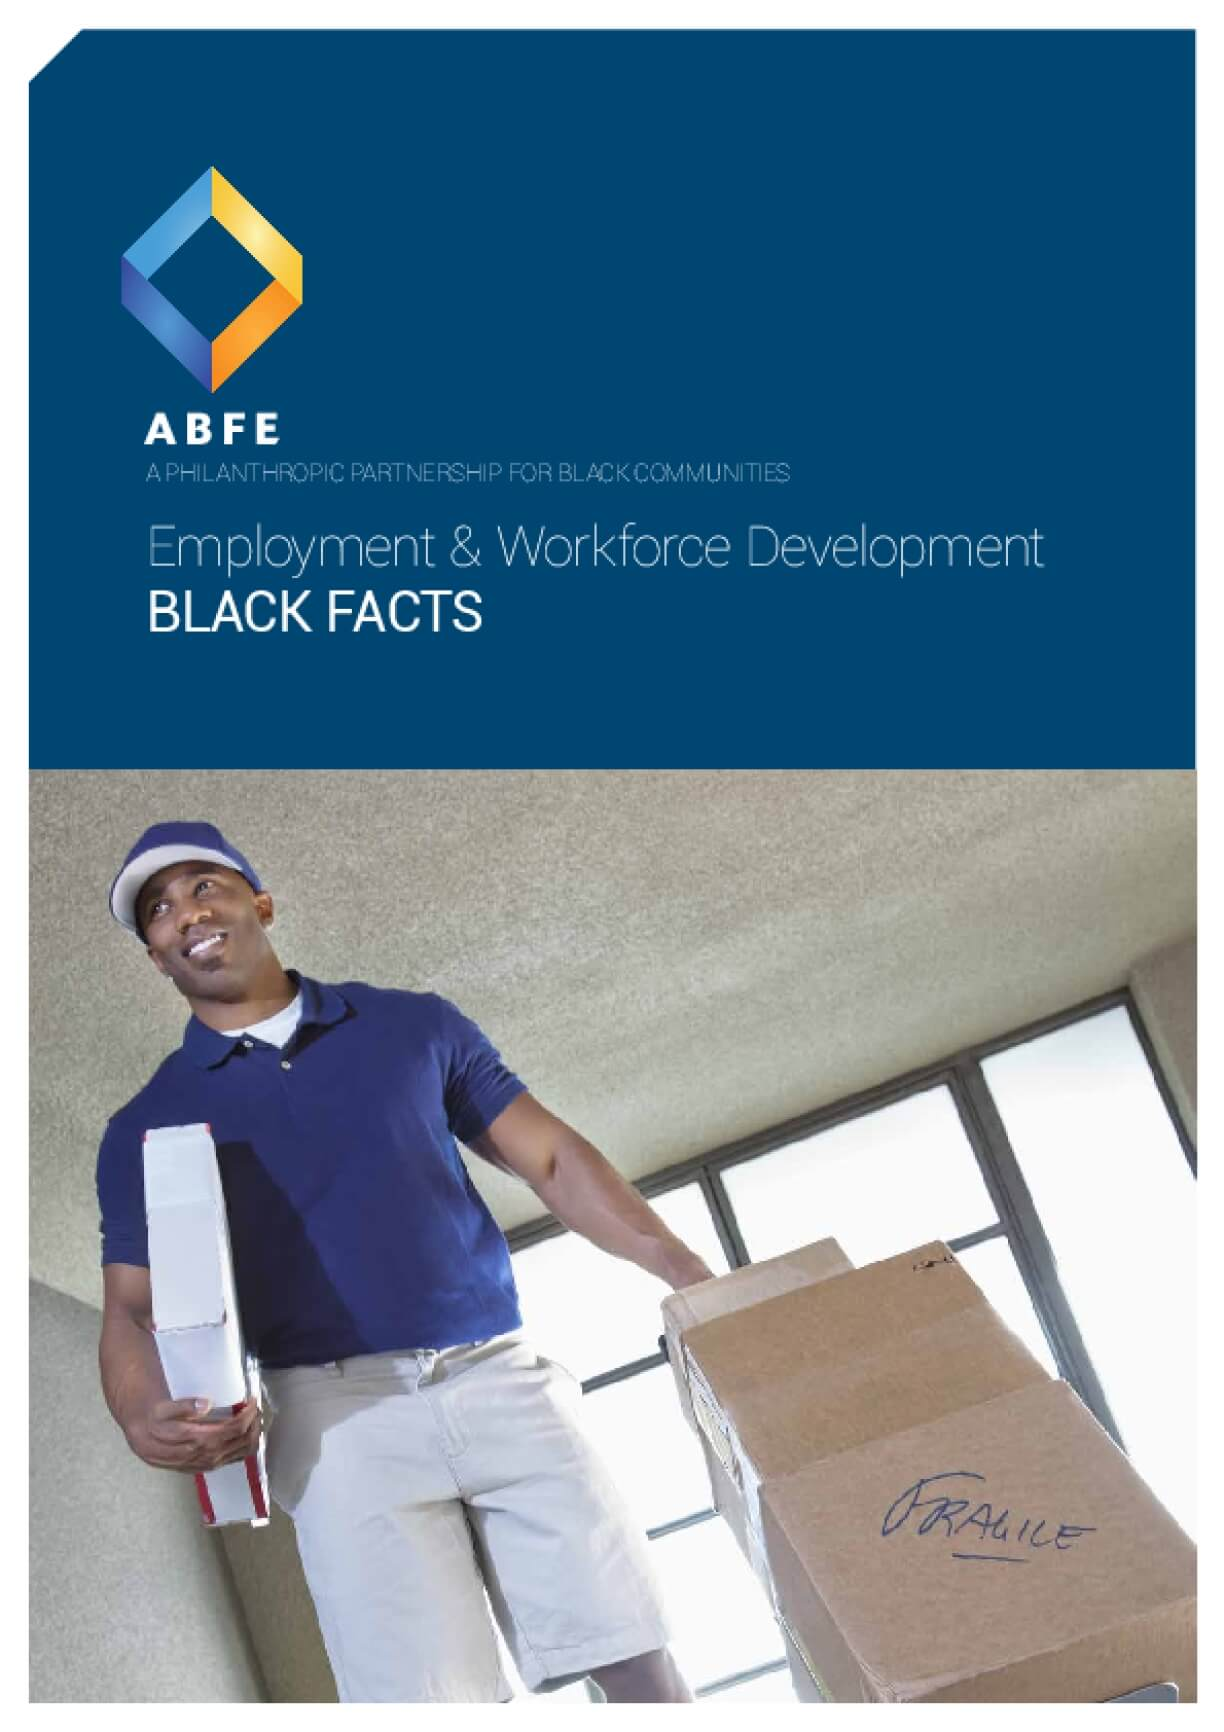 Employment and Workforce Development: Black Facts